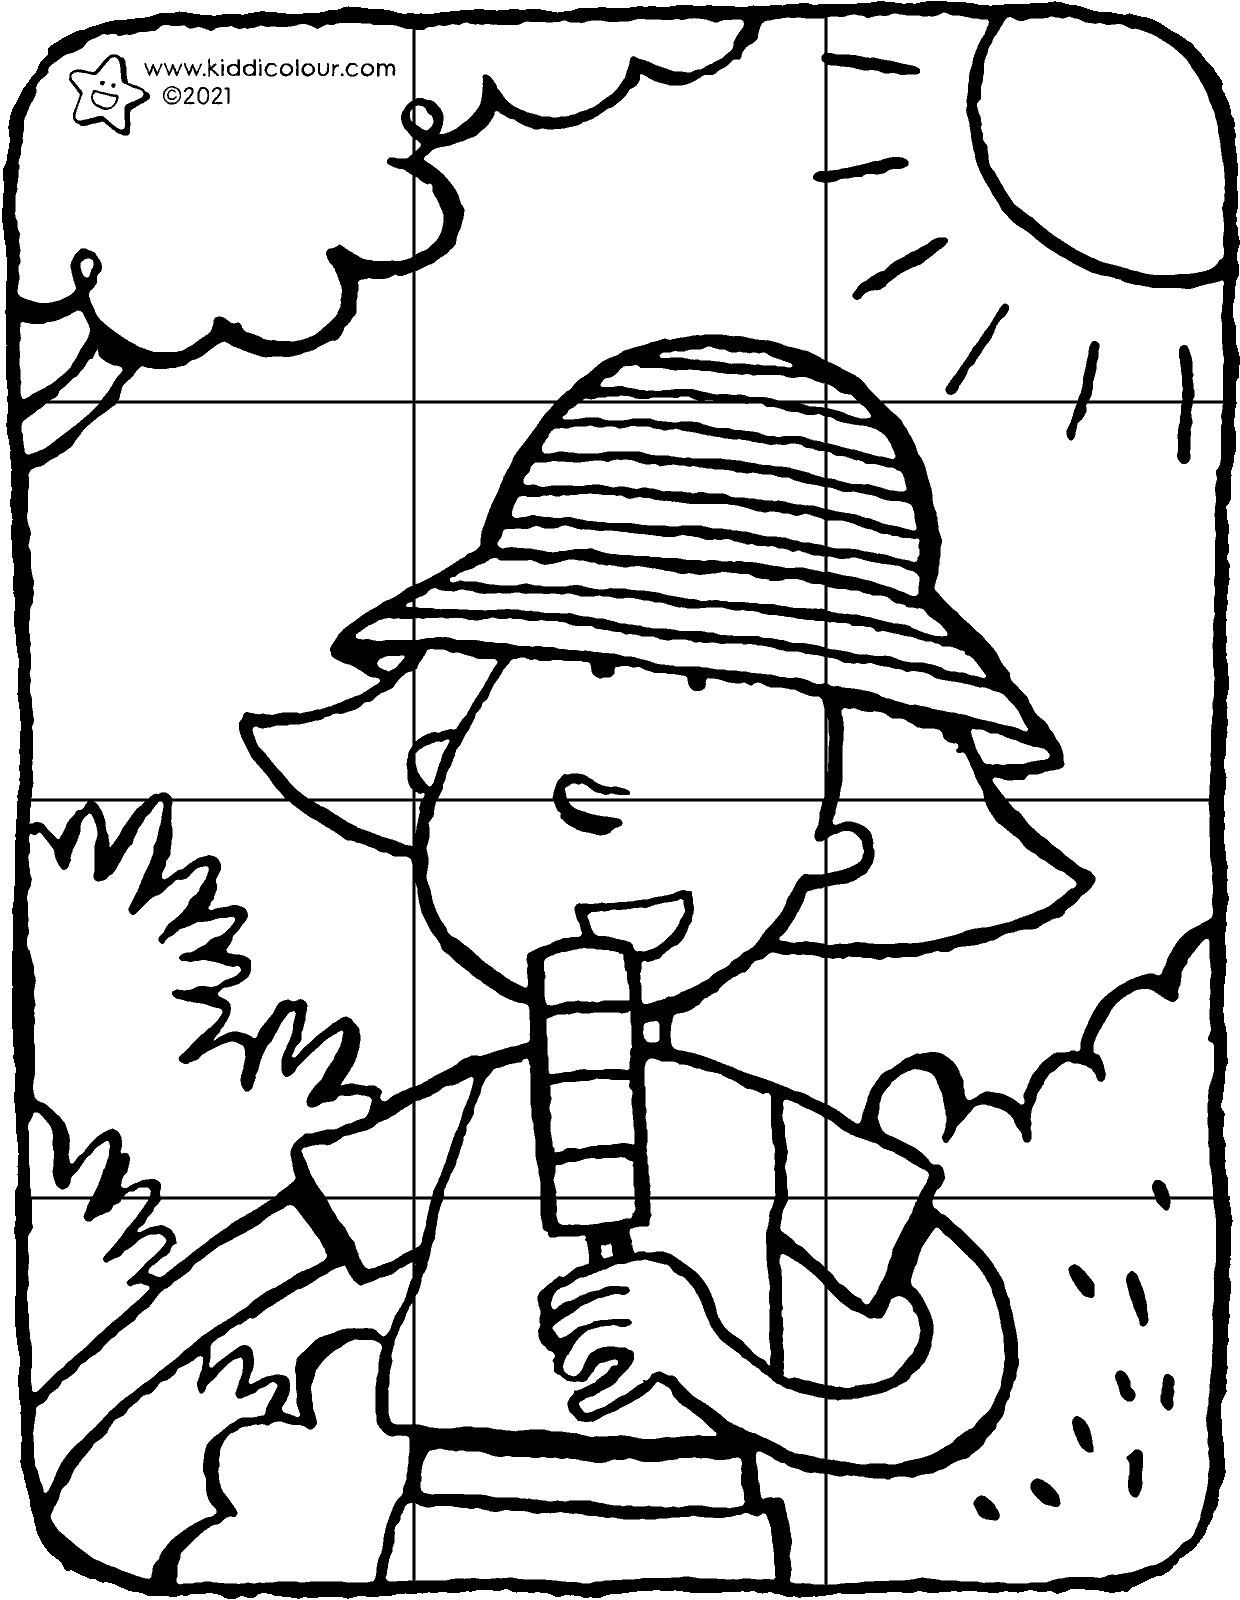 Emma with a sunhat 12-piece puzzle colouring page drawing picture 01H